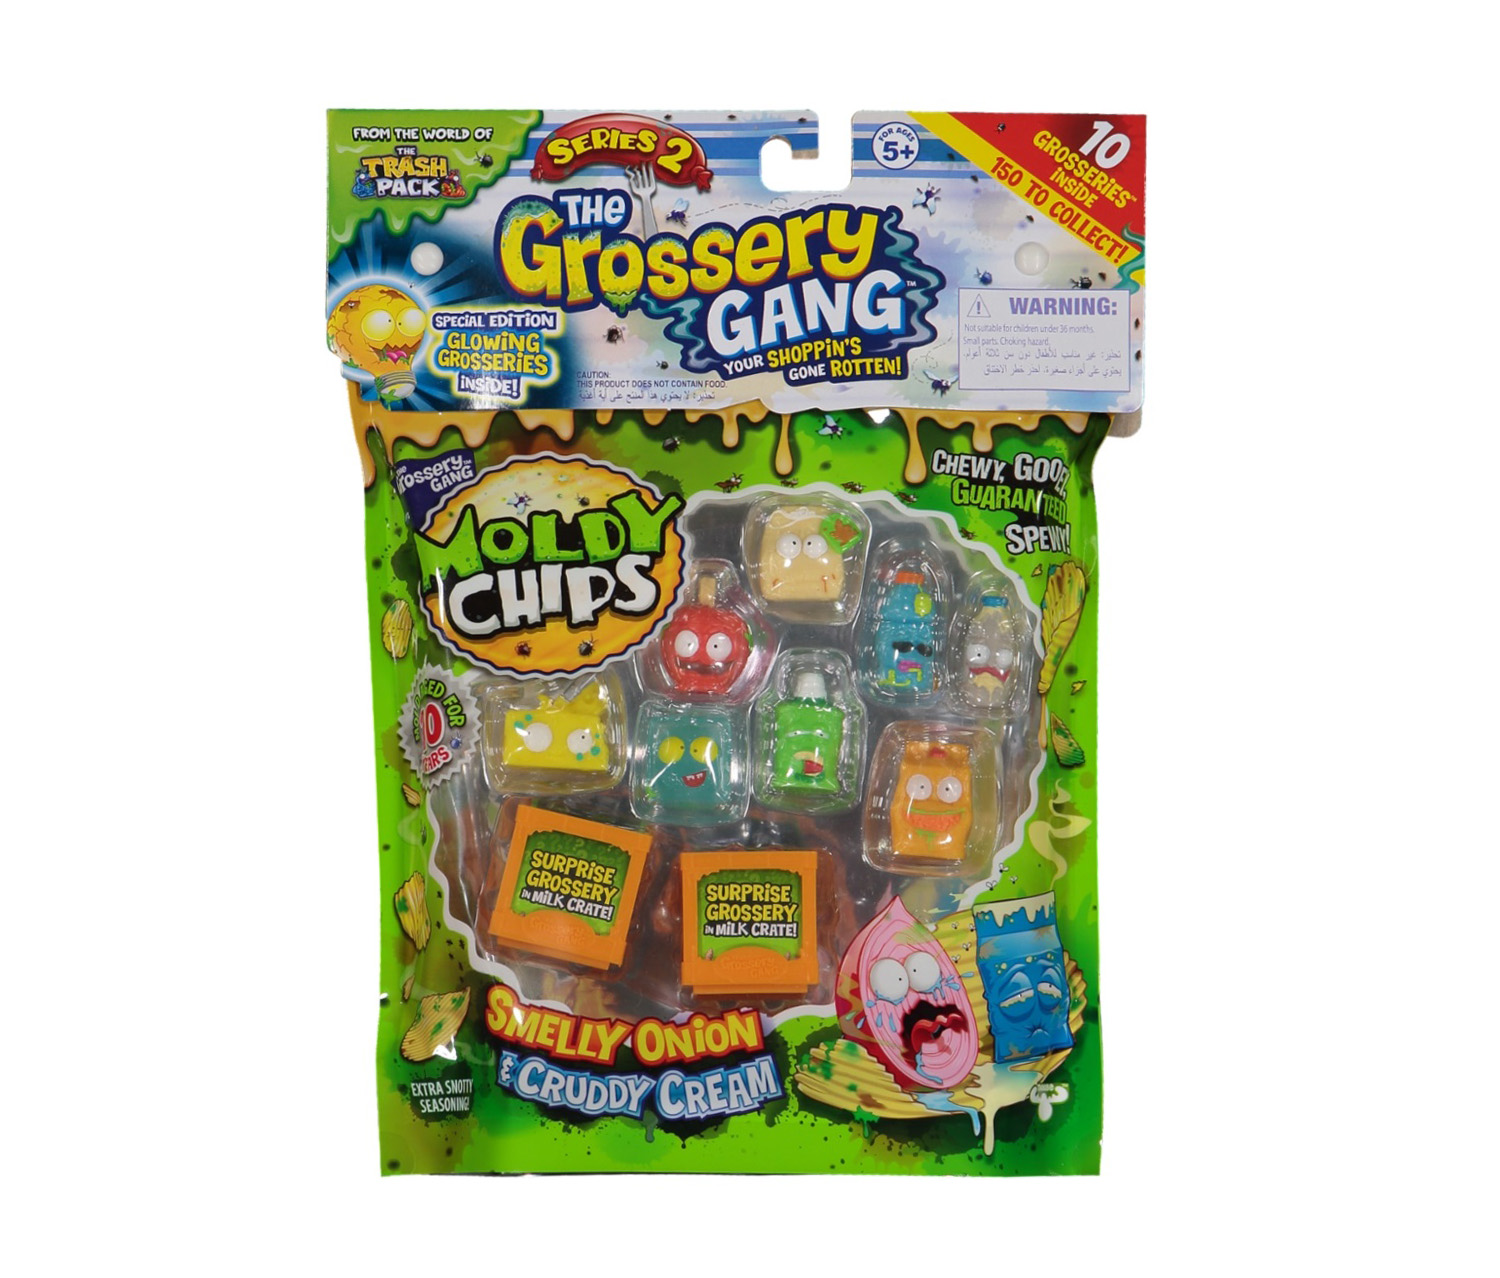 The Grossery Gang Moldy Chips Smelly Onion & Cruddy Cream Flavor 10 Pack, Series 2, Green/Orange/Yellow/Red/Blue